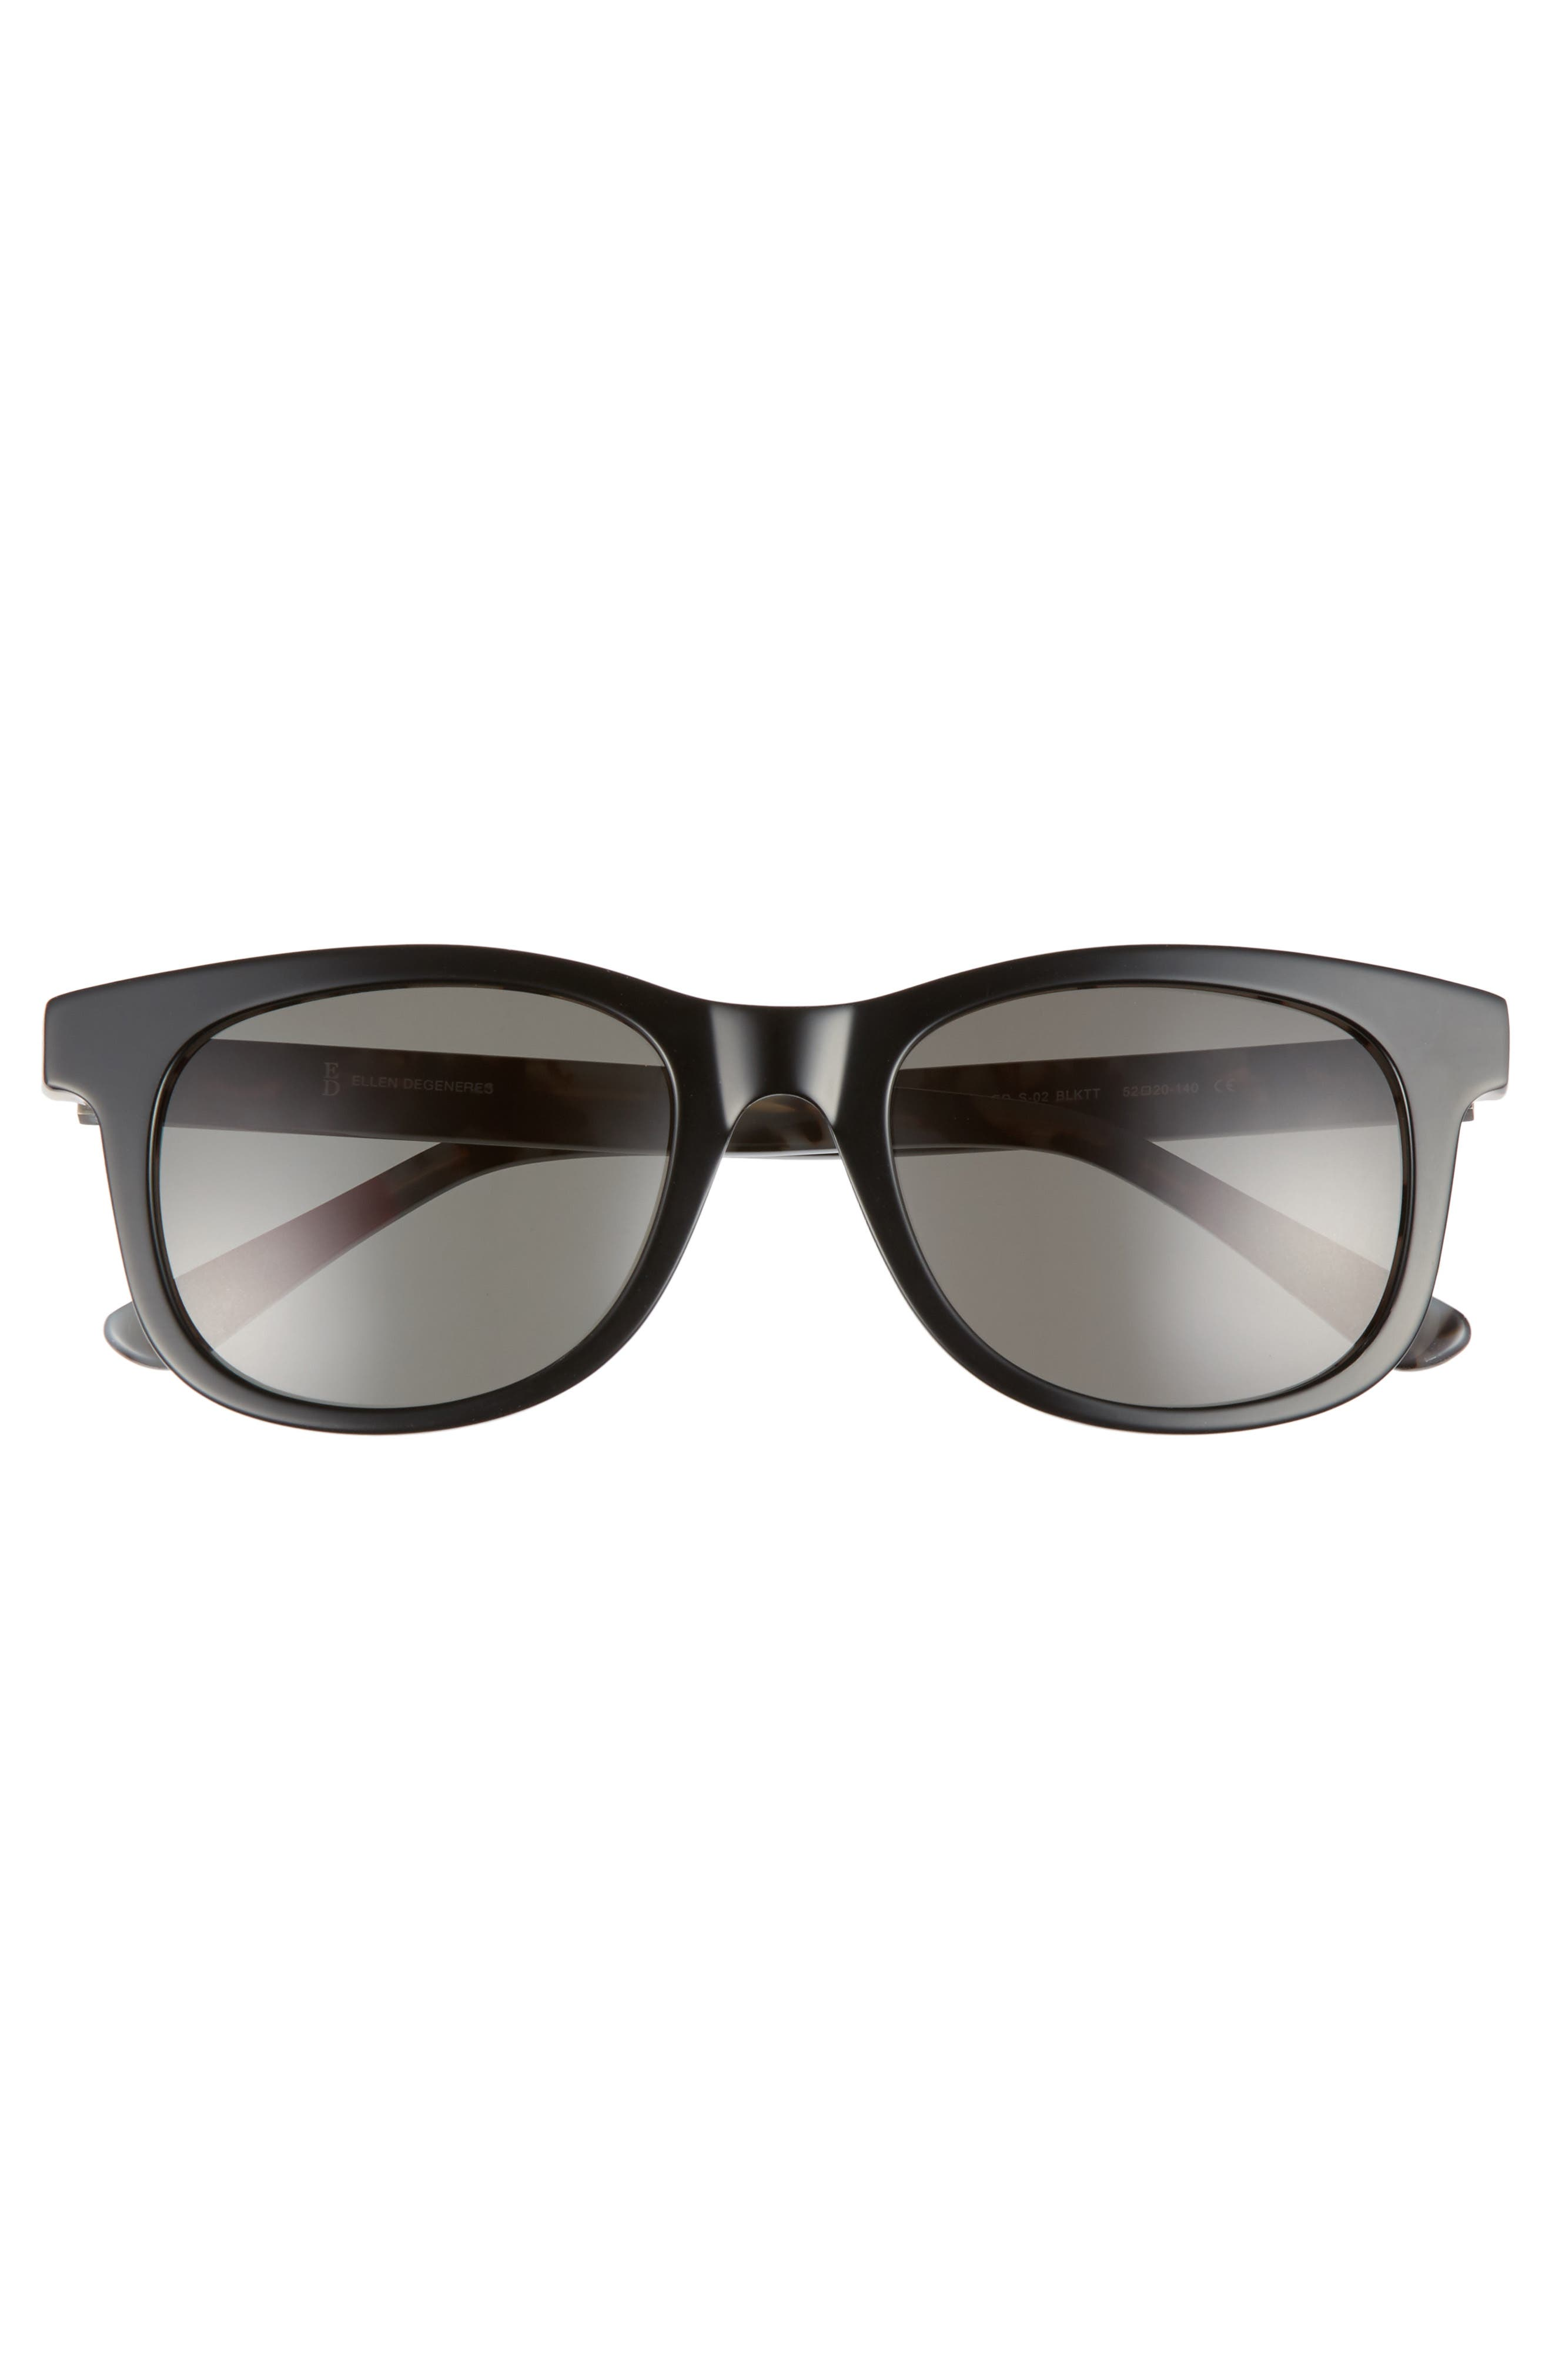 52mm Gradient Sunglasses,                             Alternate thumbnail 3, color,                             BLACK TORTOISE